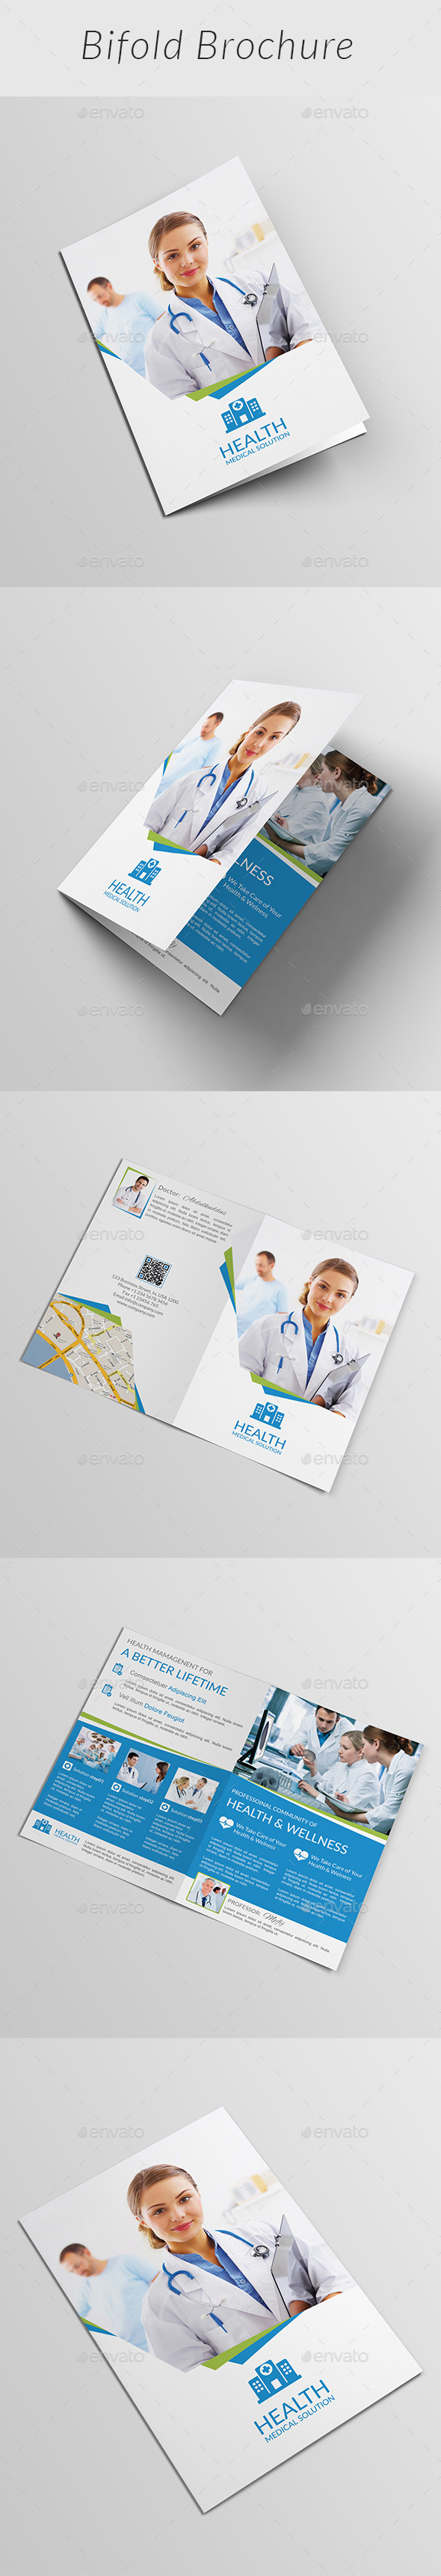 Medical Bifold Brochure | Volume 1 - Corporate Brochures